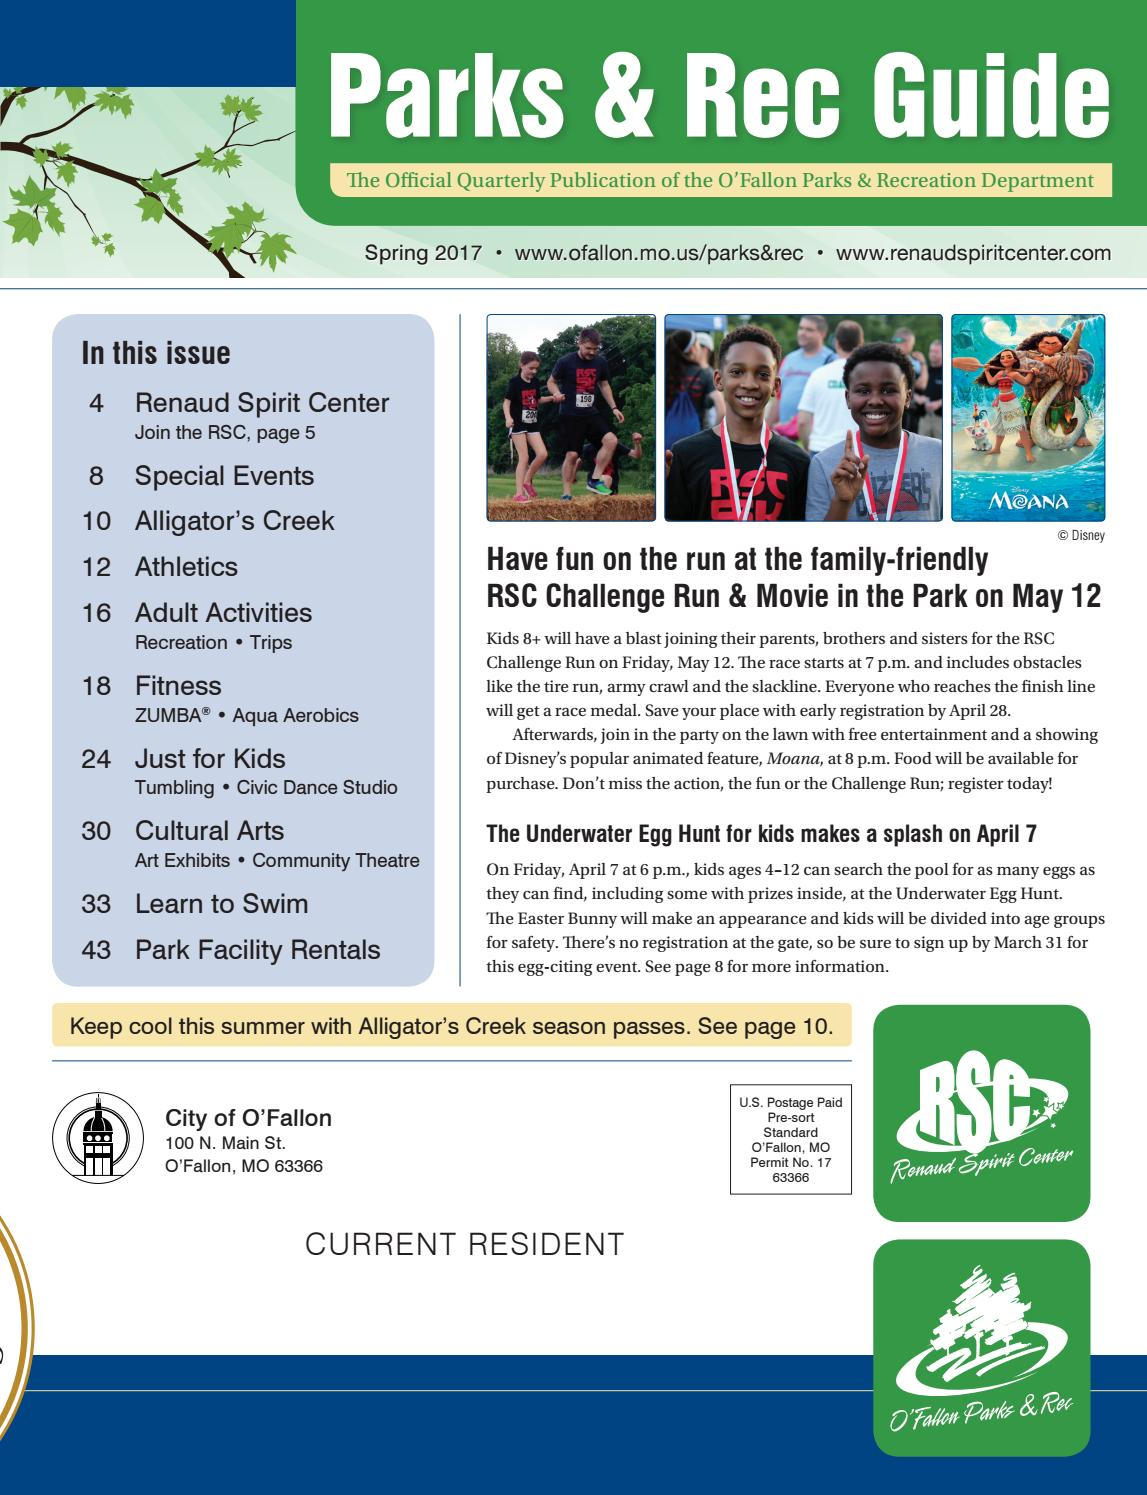 o'fallon parks and rec guide - spring 2017 by city of o'fallon - issuu